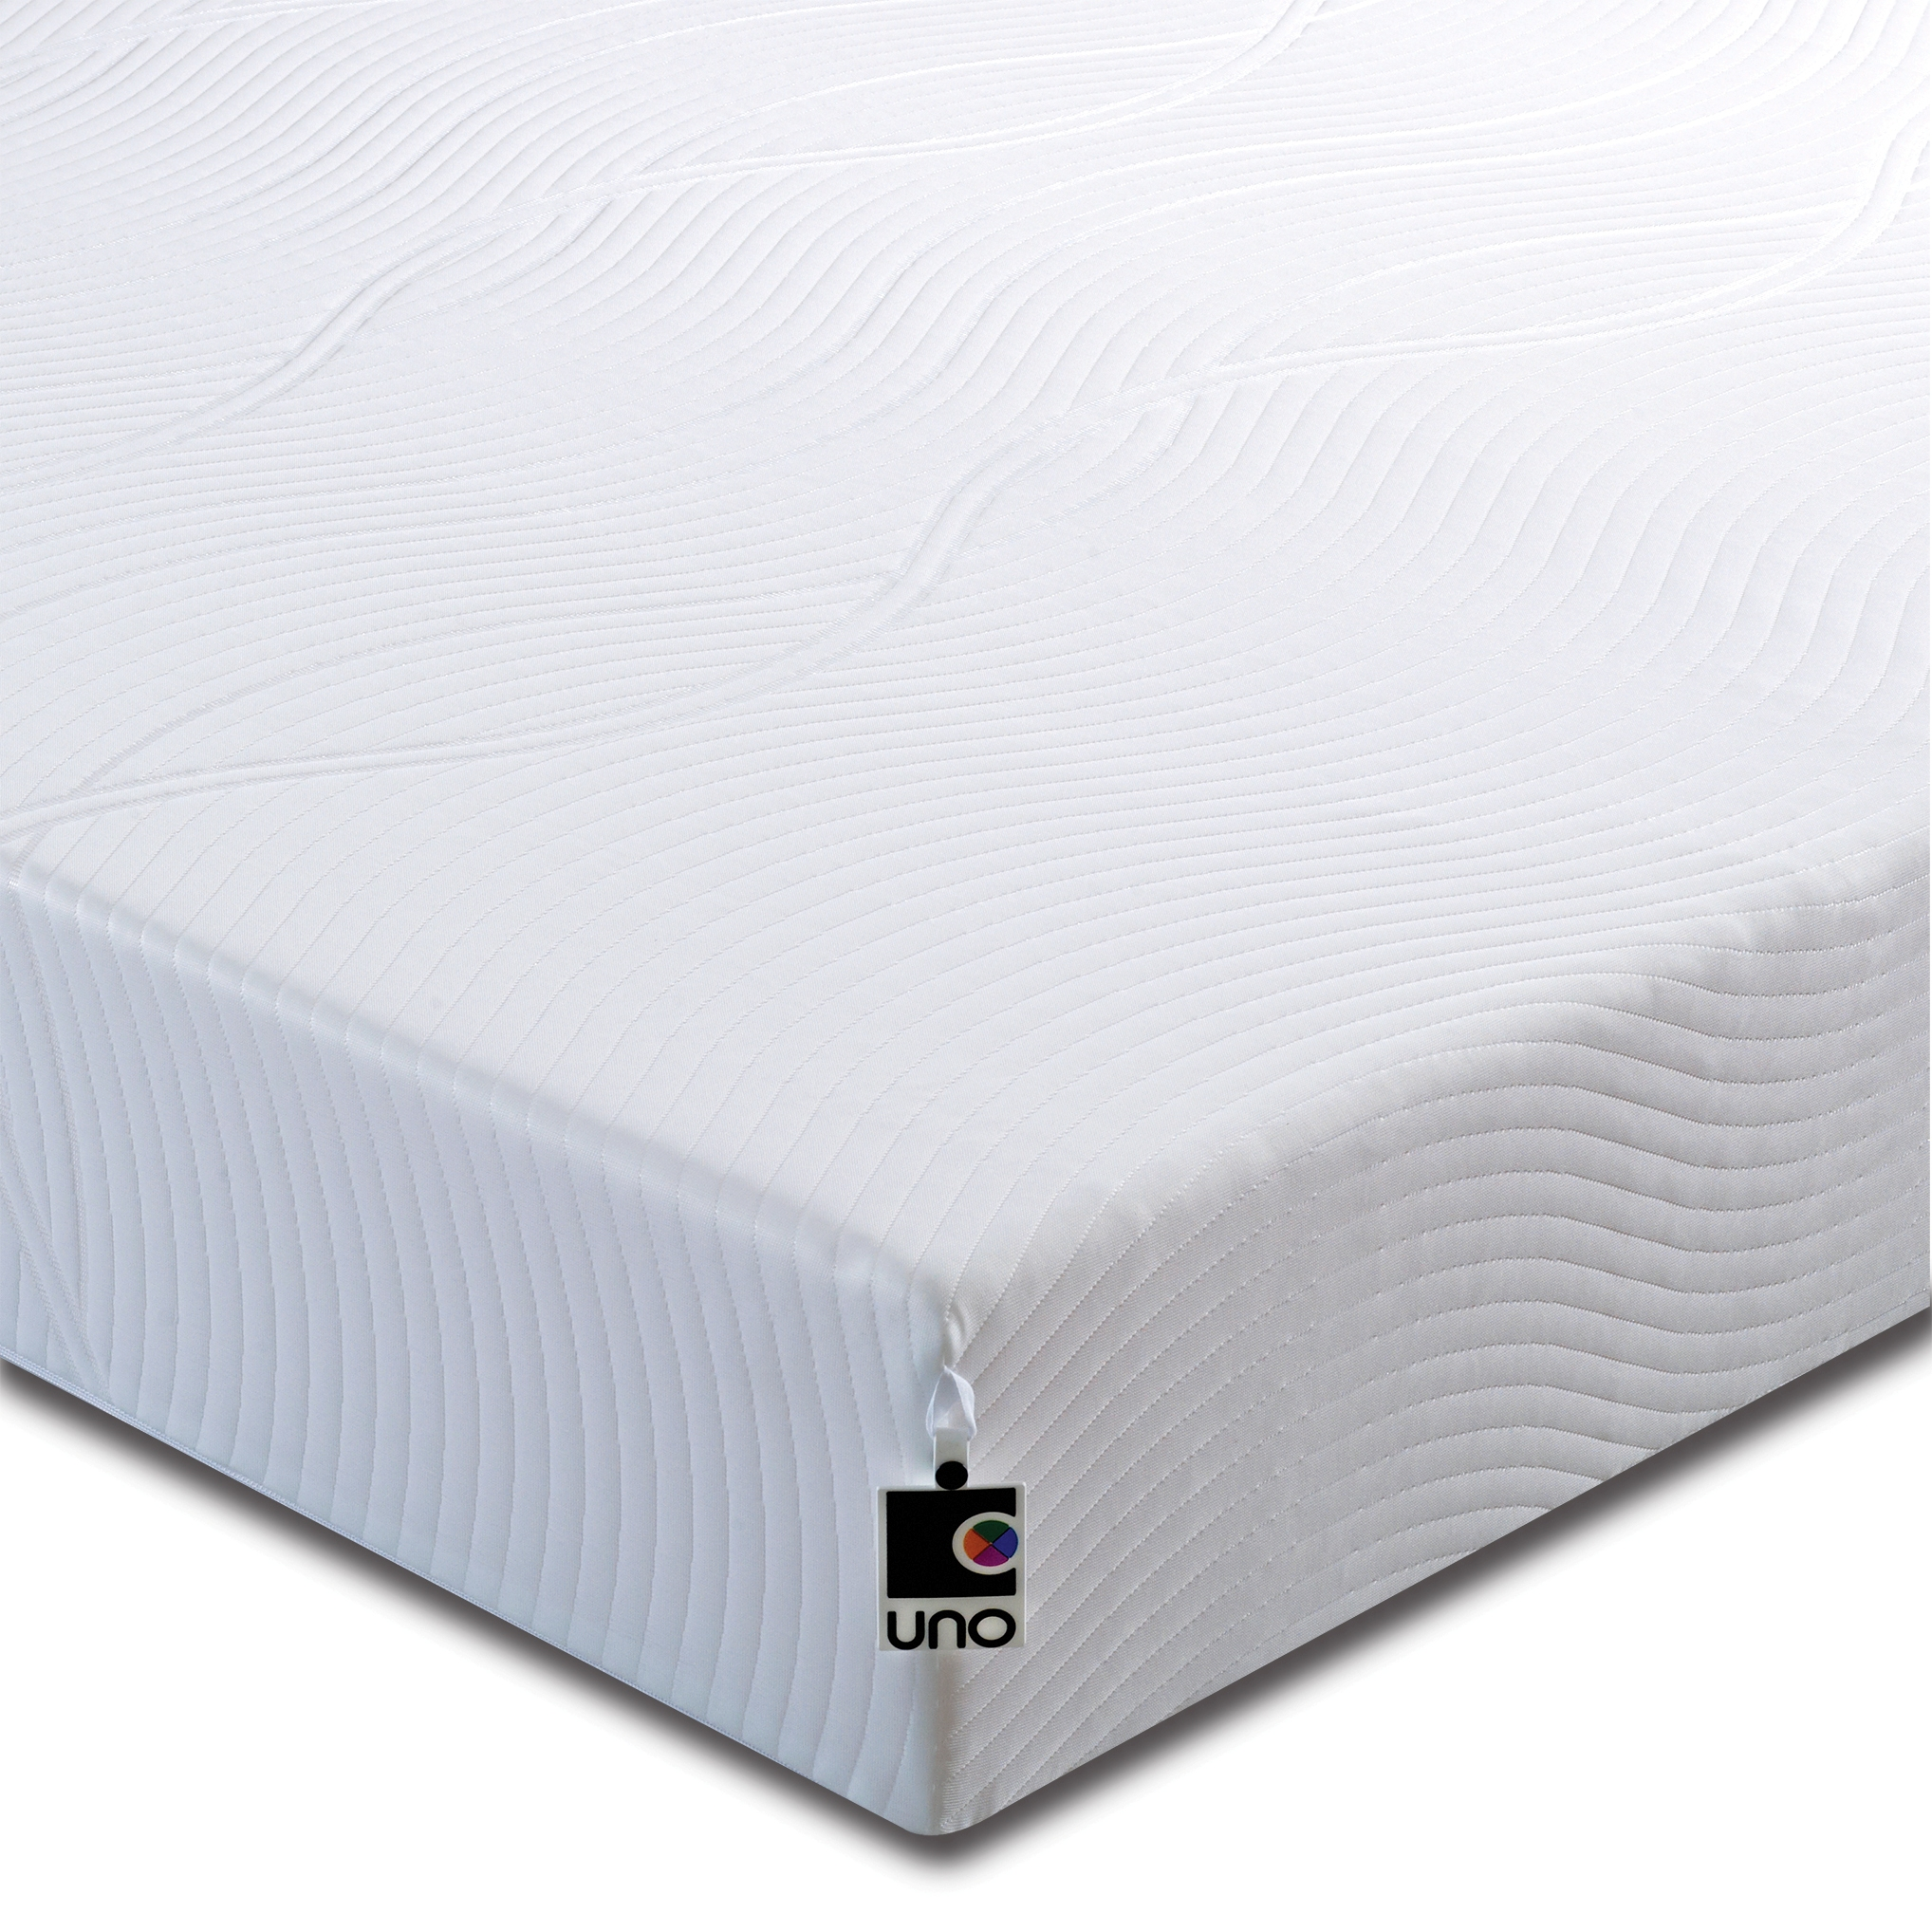 Uno single memory foam mattress